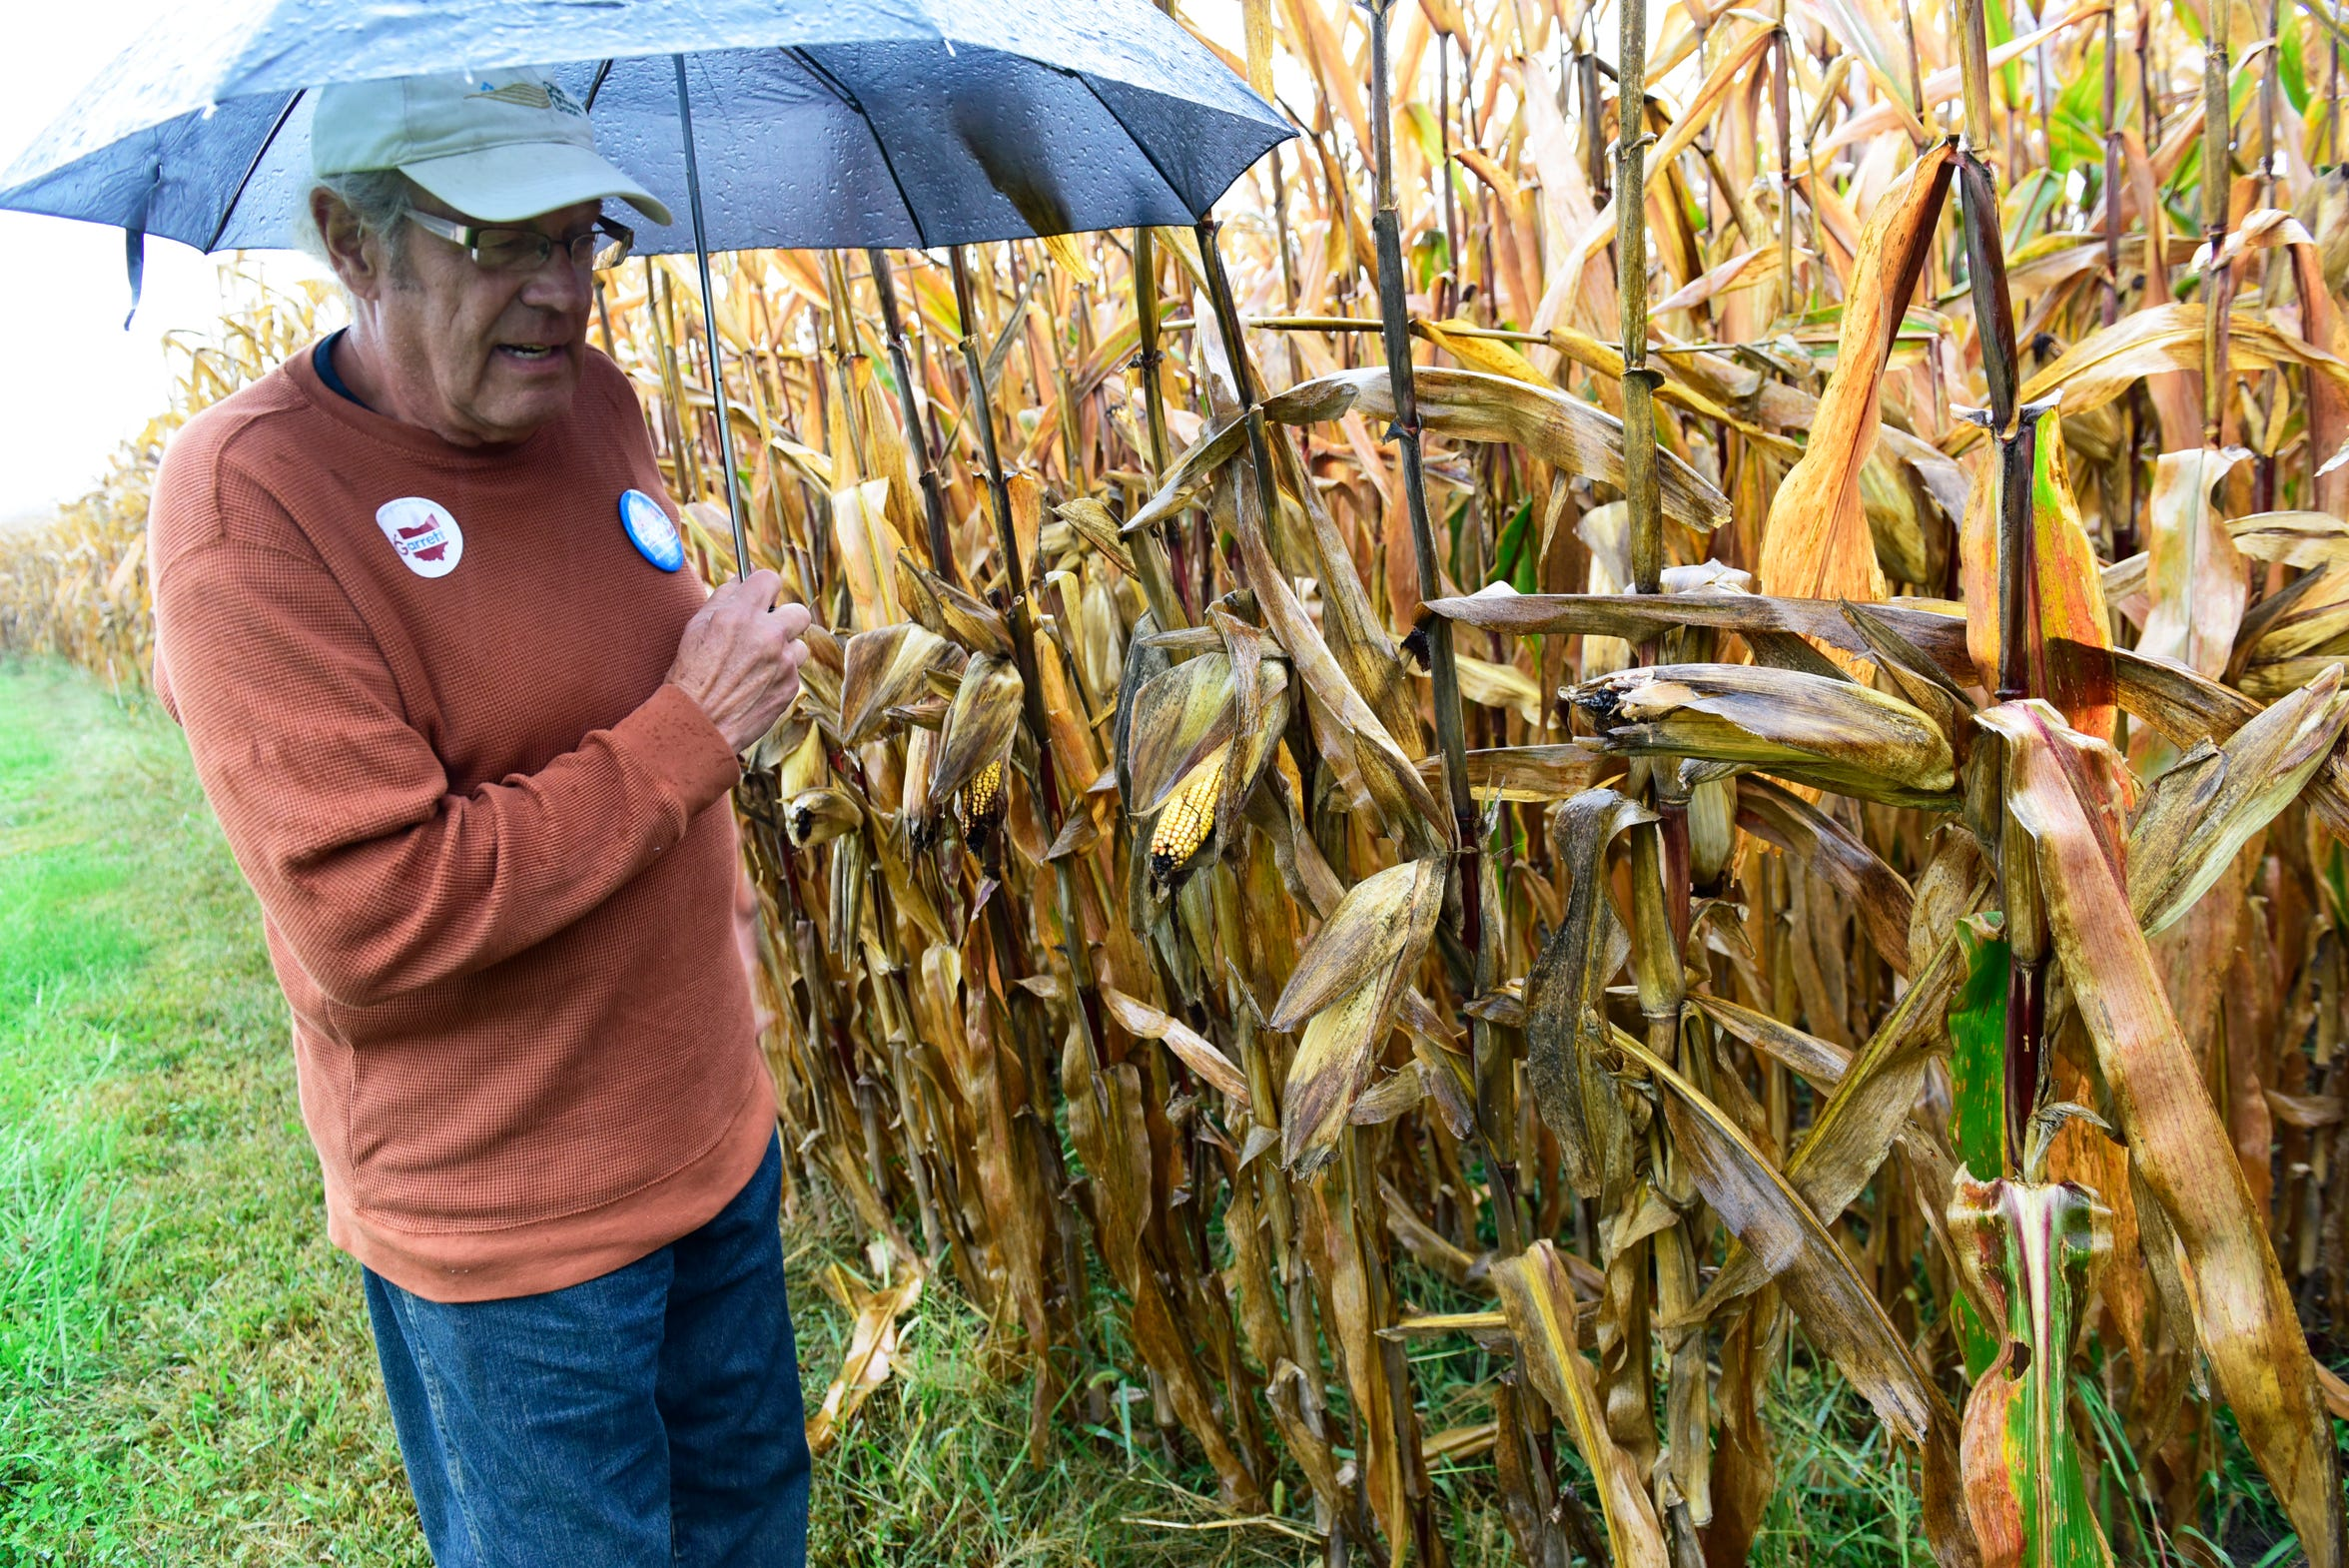 Soybean and corn farmer Roger Wise of Ballville Township said prices have fallen well below the cost of production for farmers.